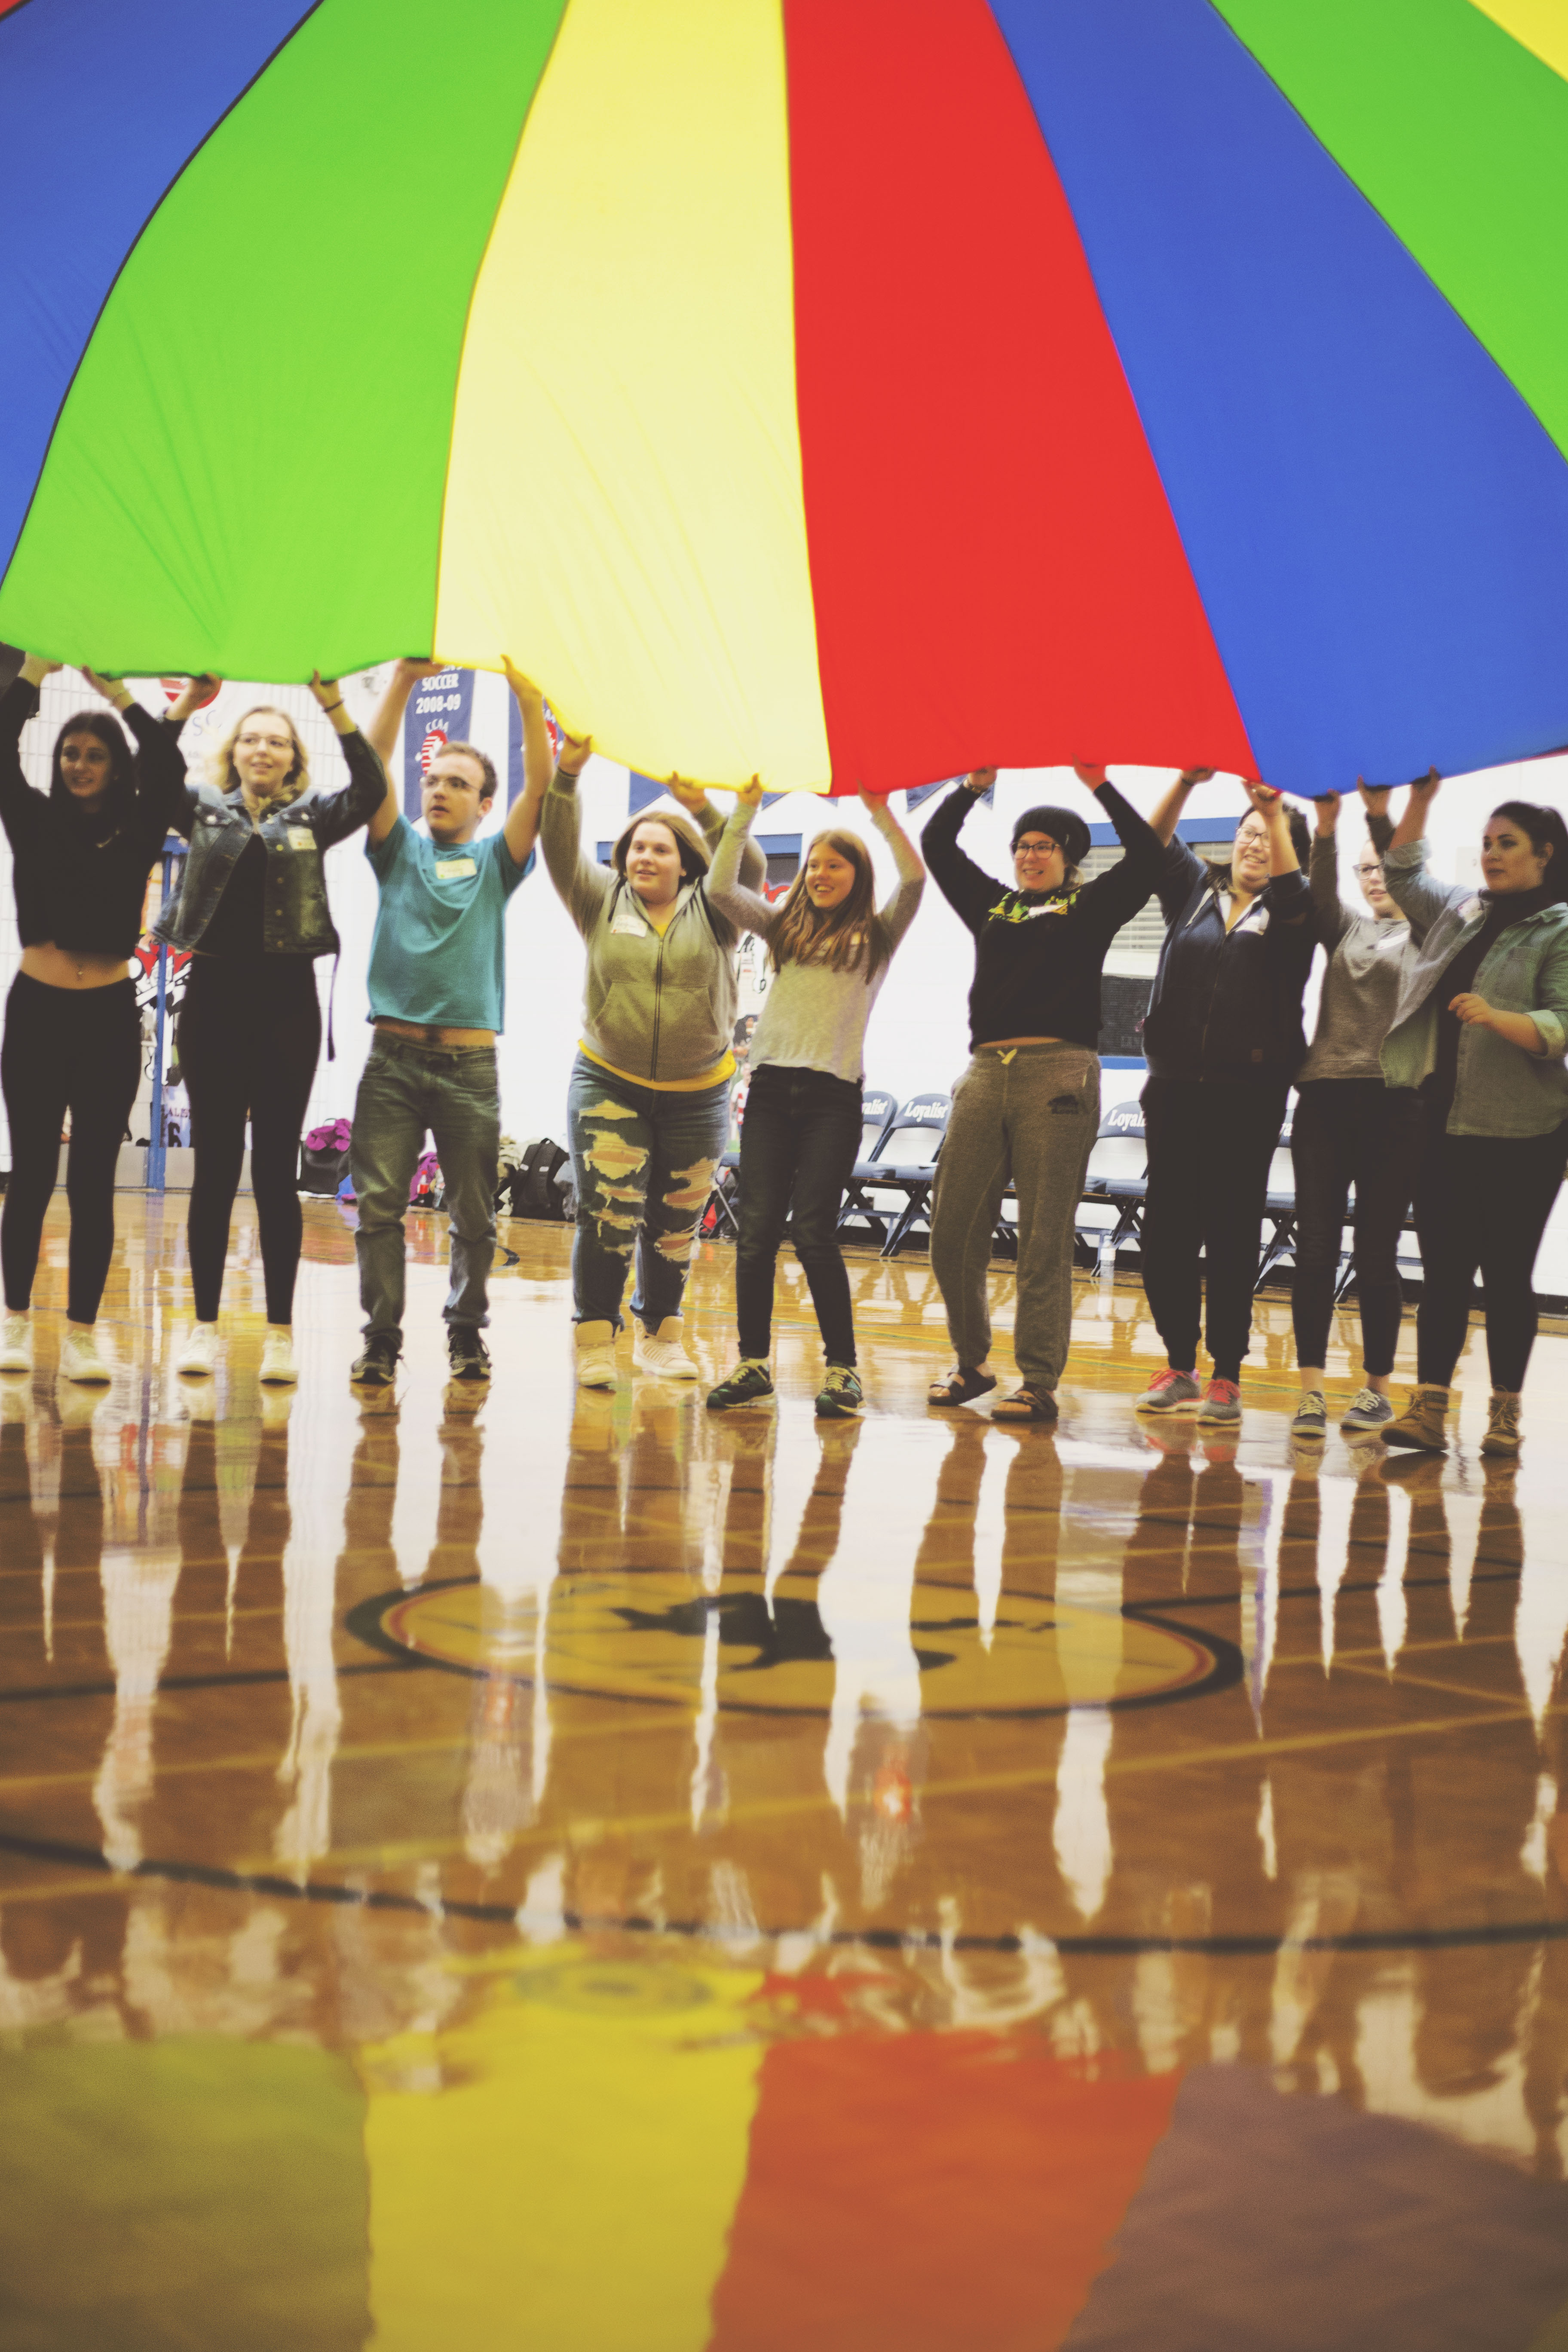 A group of students play with a large multi-coloured parachute in a gymnasium.